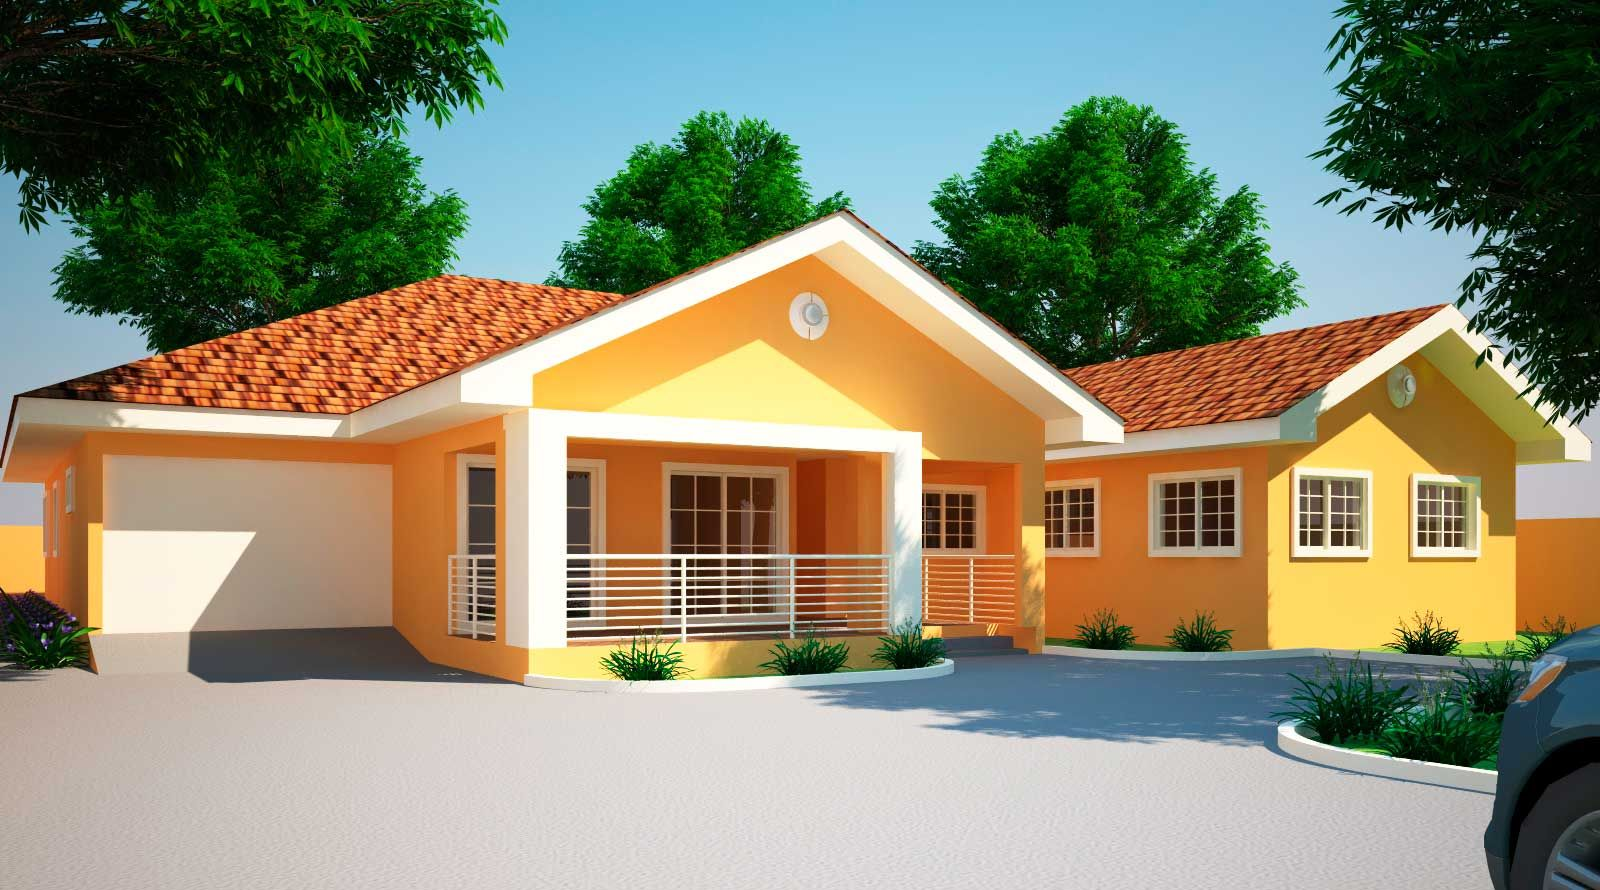 4 Bedroom House Plan Ghana